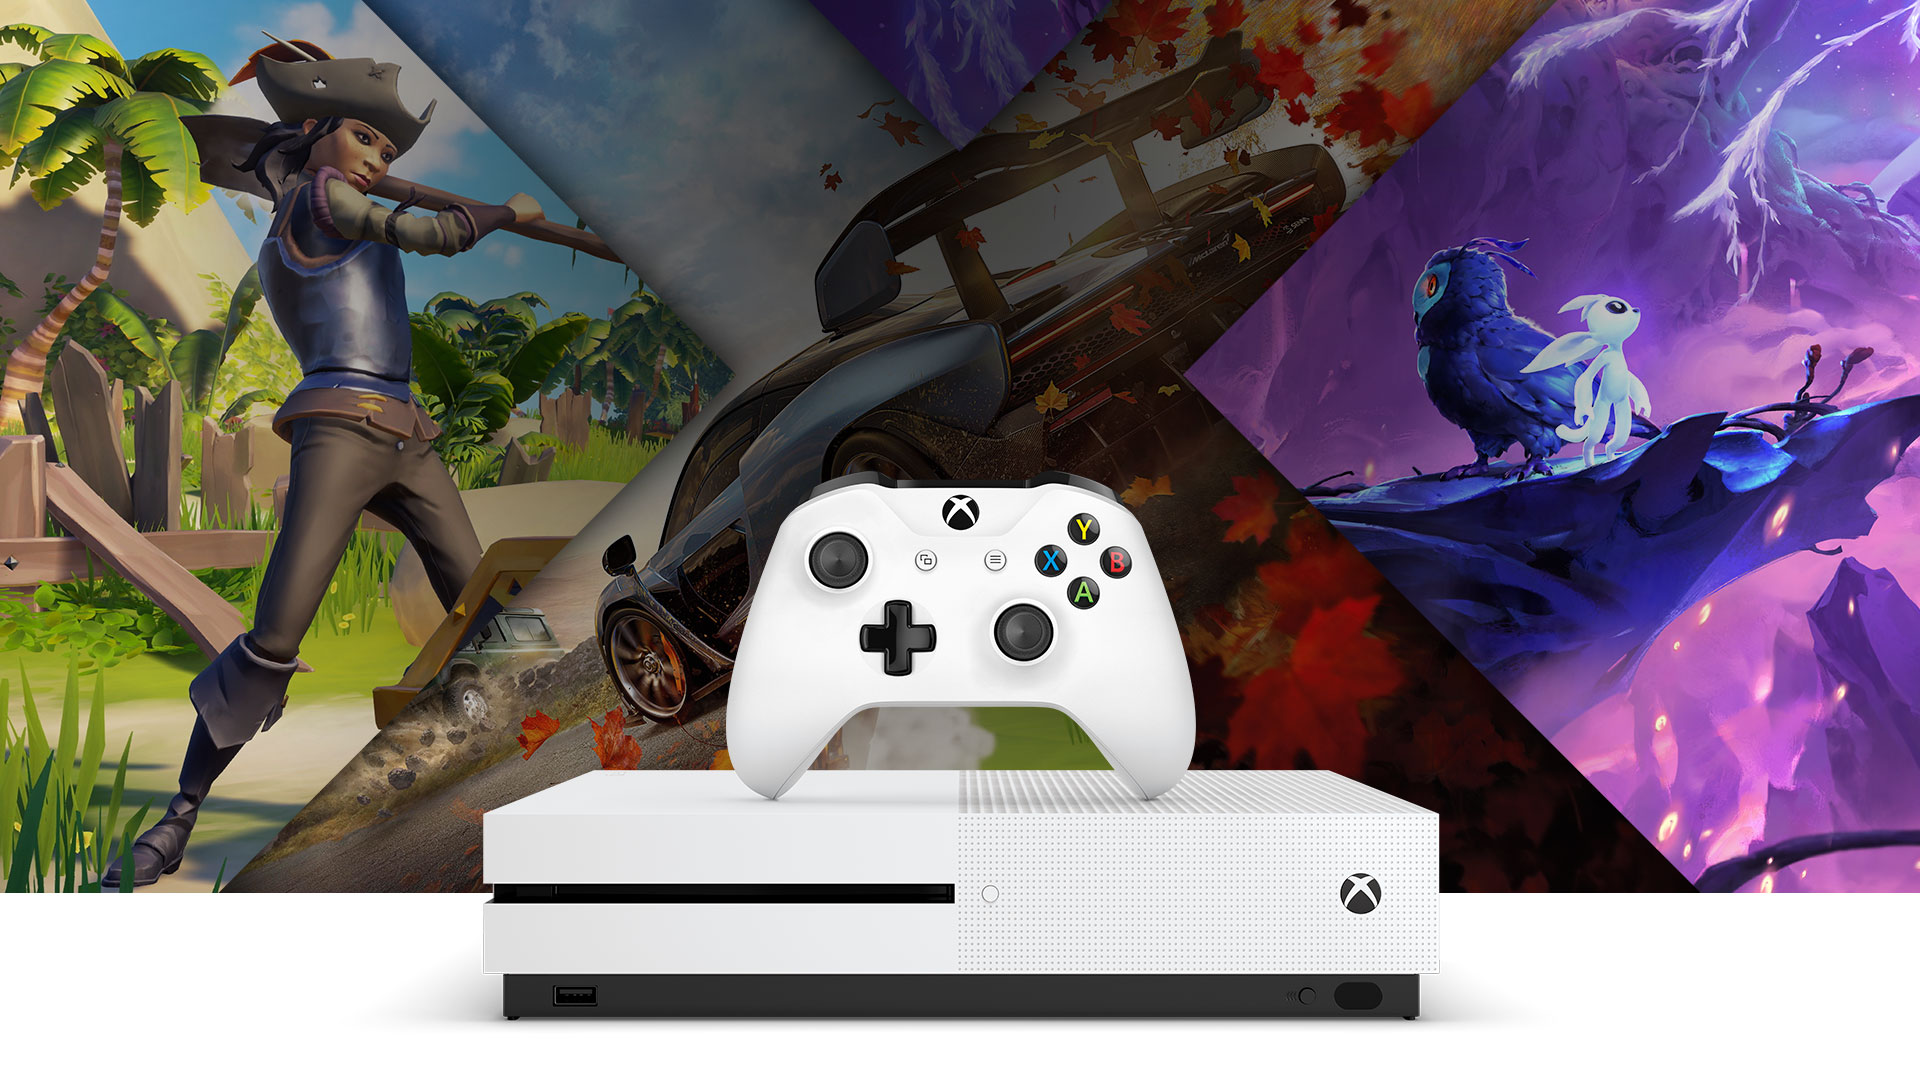 Xbox One S 和白色無線控制器由 Sea of Thieves、Forza Horizon 4、Ori and the Will of Wisps 圖案所圍繞的正面圖